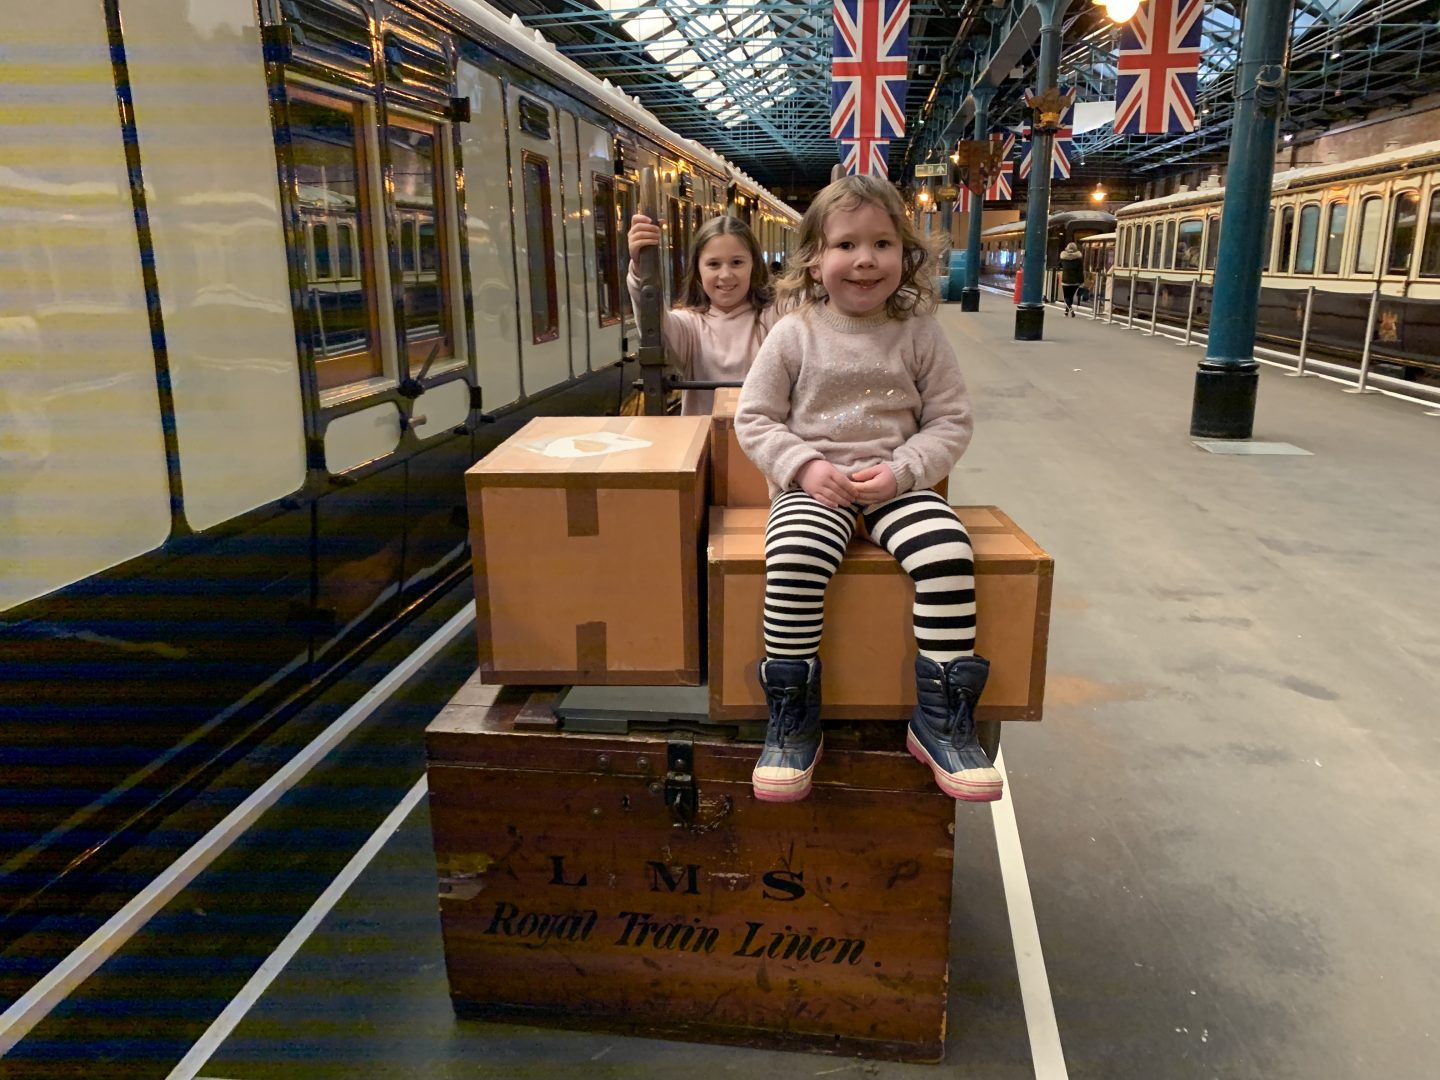 February half term activity at the Railway museum a picture of a train and luggage cart with two children